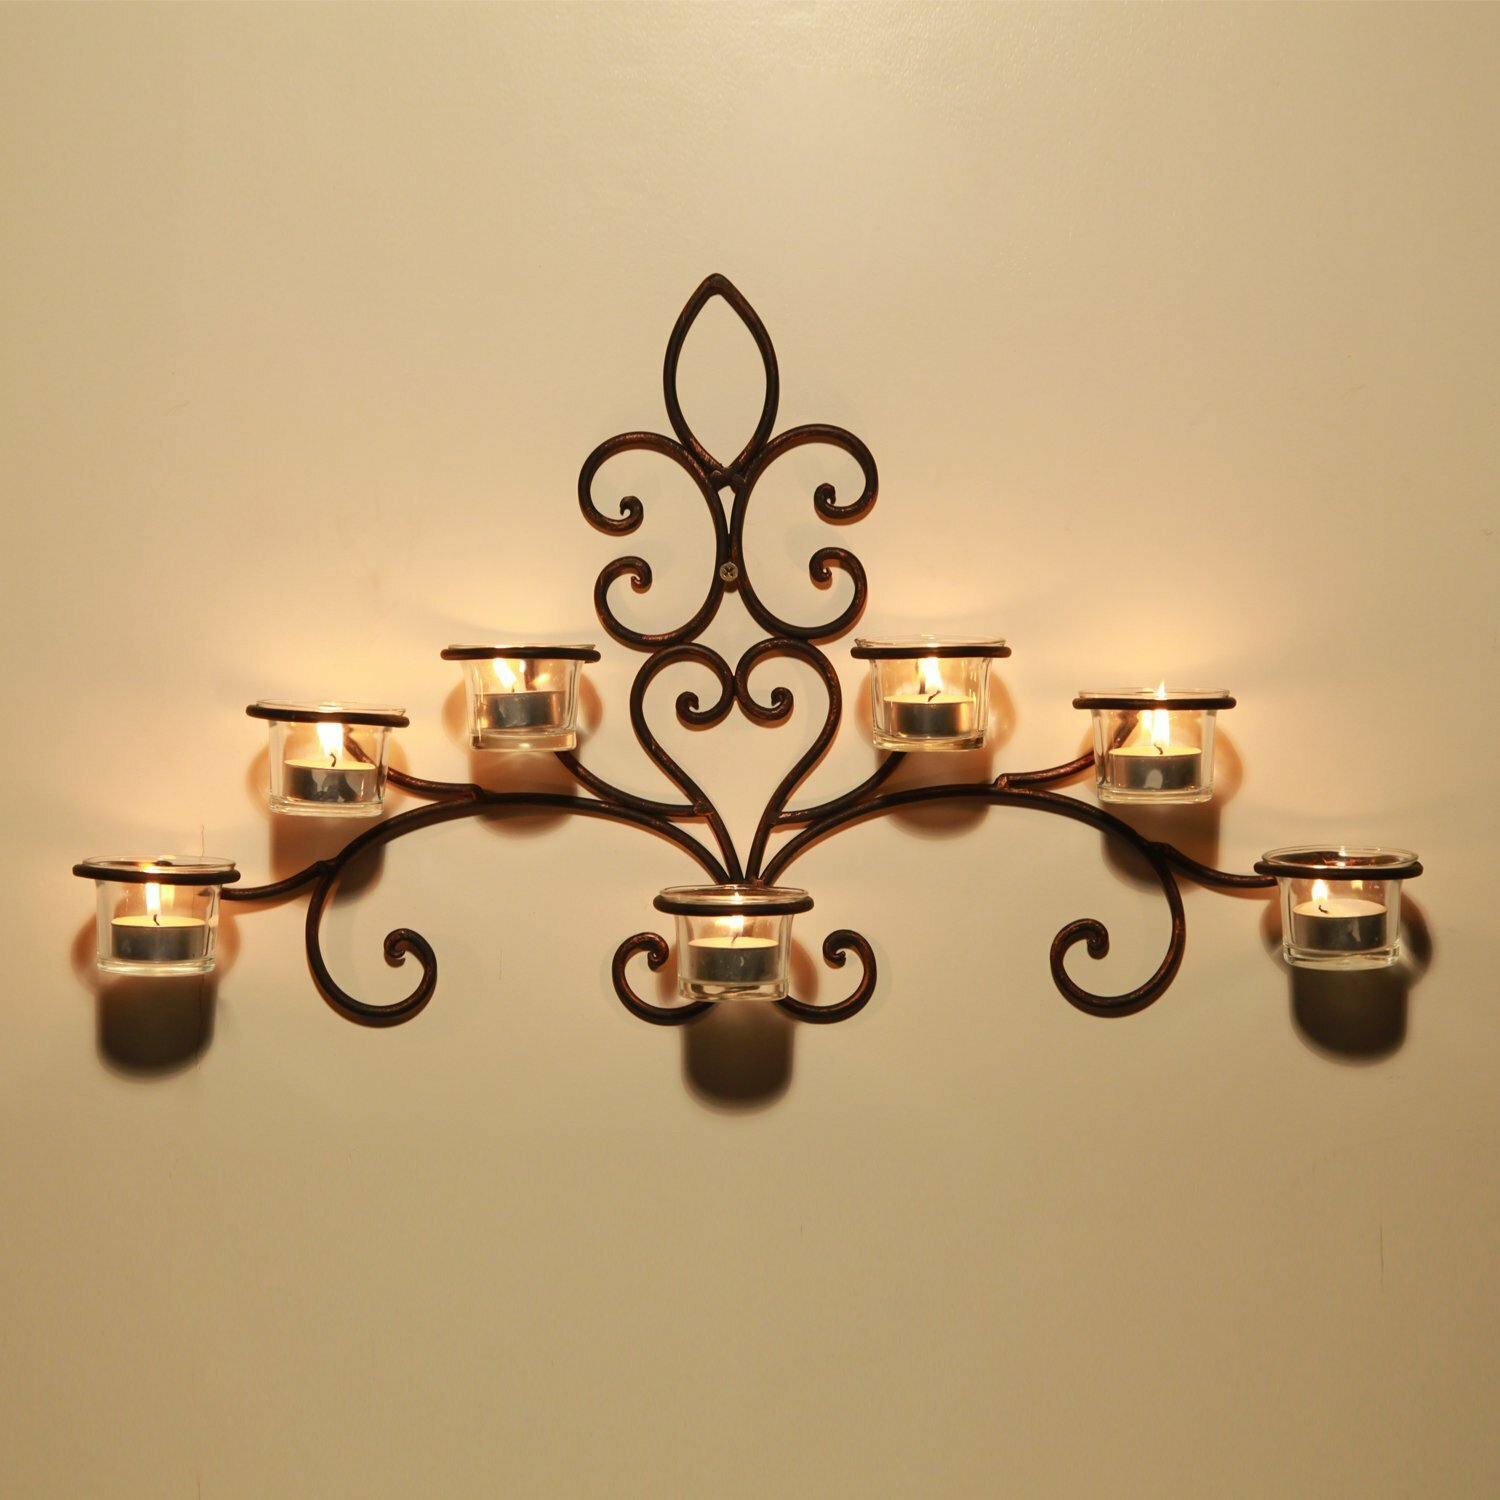 Iron Wall Sconce Candle Holder By Adeco Trading : AdecoTrading Iron Wall Sconce Candle Holder & Reviews Wayfair